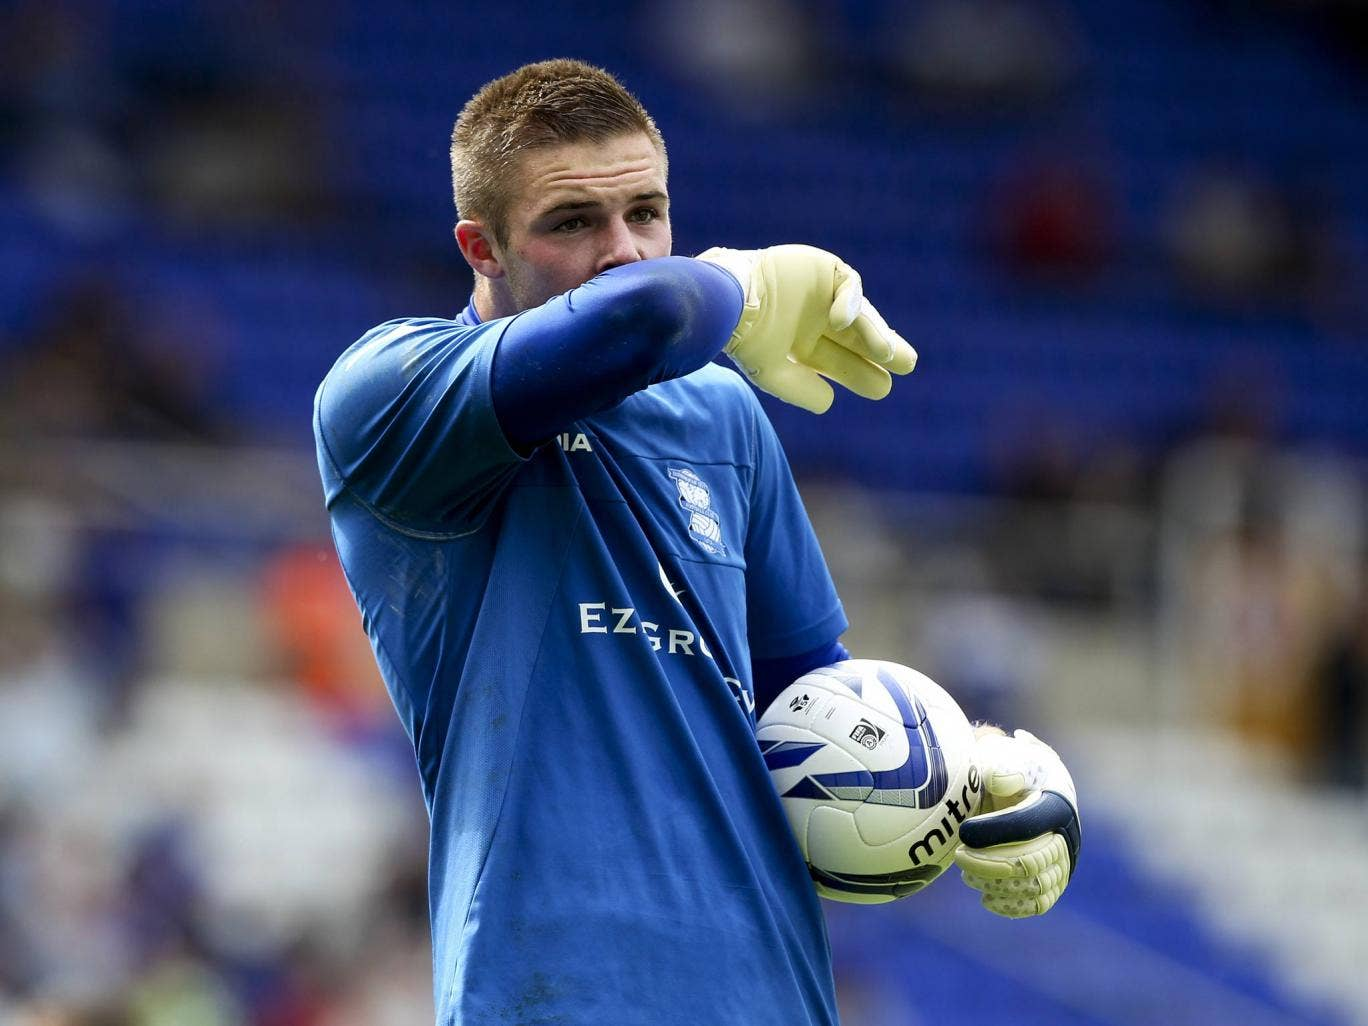 <b>Jack Butland</b><br/> Cash-strapped Birmingham have said they will listen to offers for any of their players, including England international Jack Butland. Despite appearing for England Butland is still only 19-years-old, and may not have the neccessar